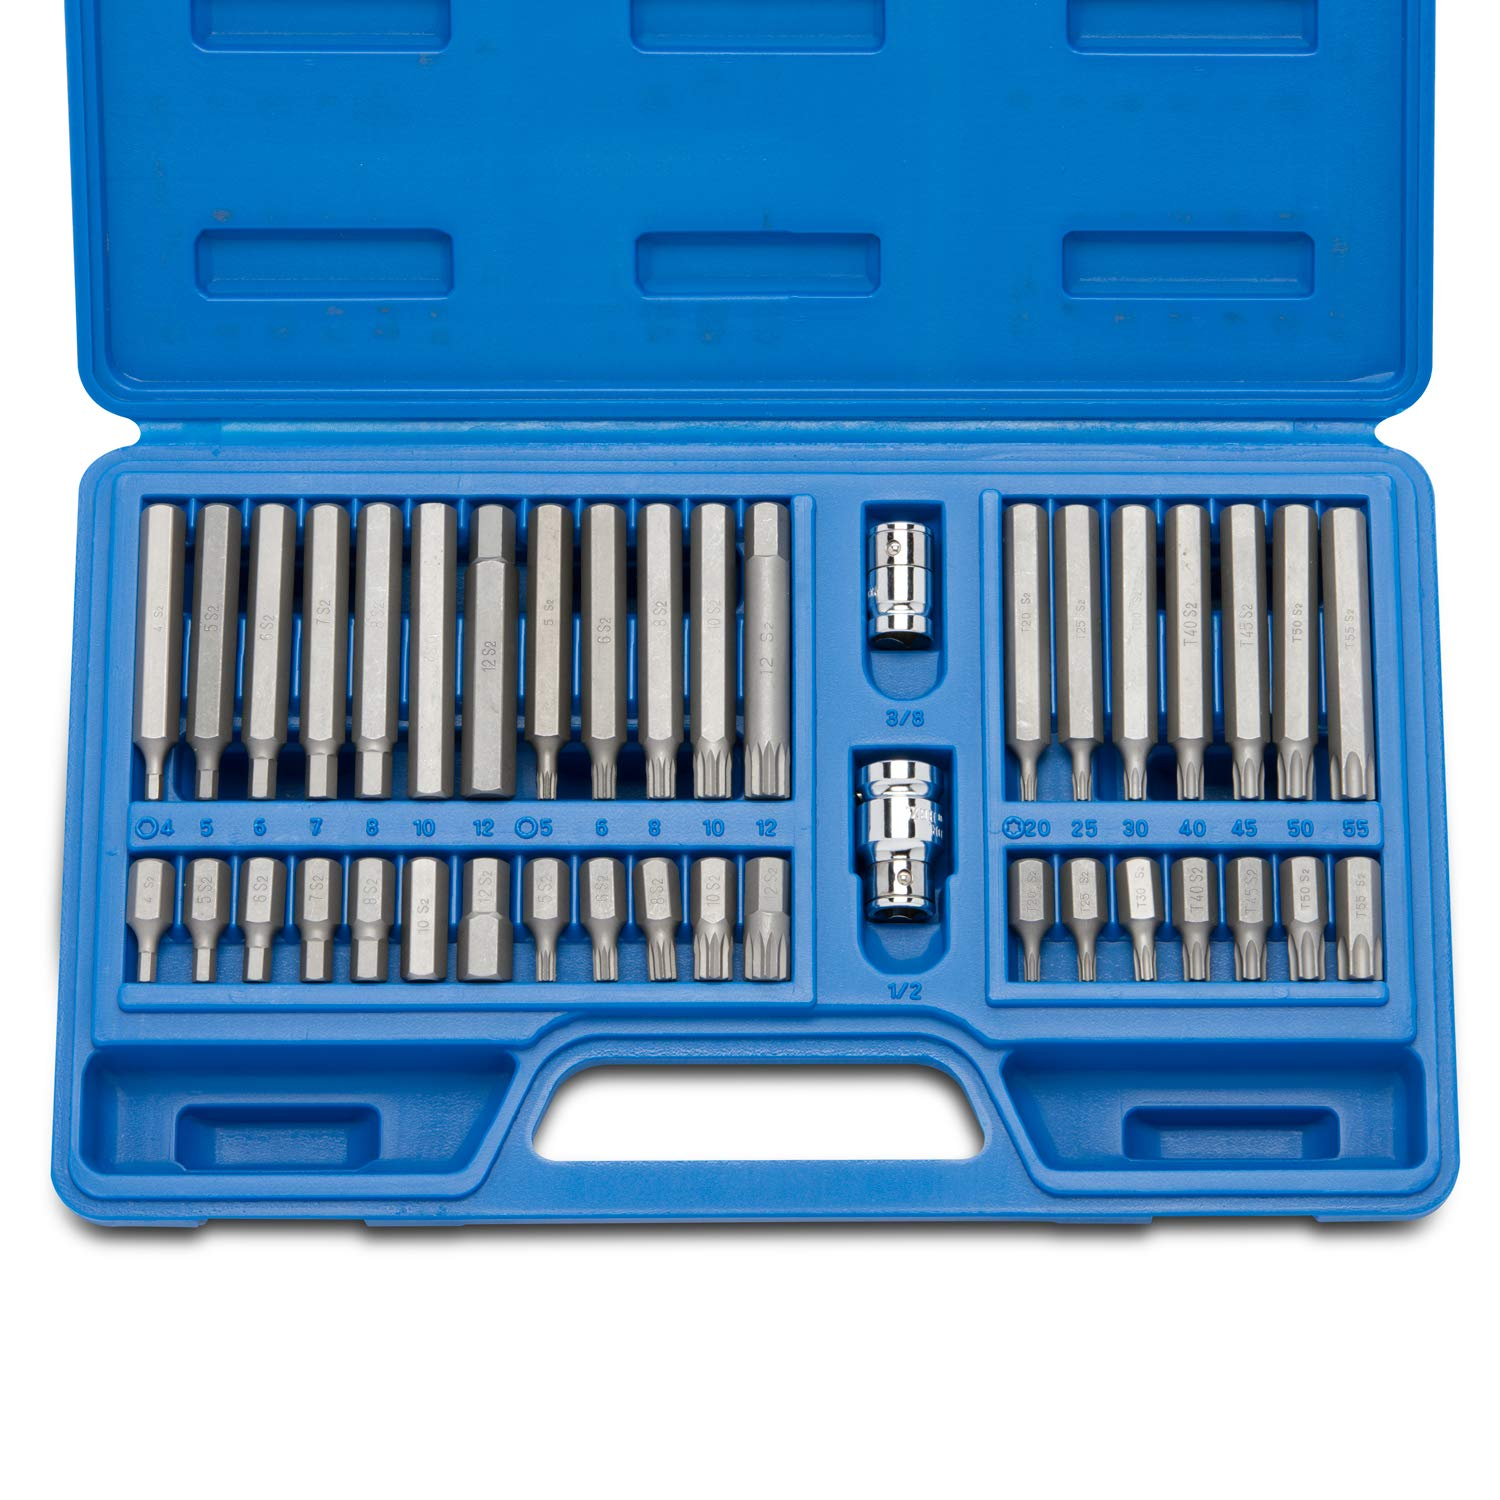 Neiko 10280B Combination Hex, Torx, and XZN Triple Square Impact Driver Socket Bit Set, 40-Piece Ridgerock Tools Inc